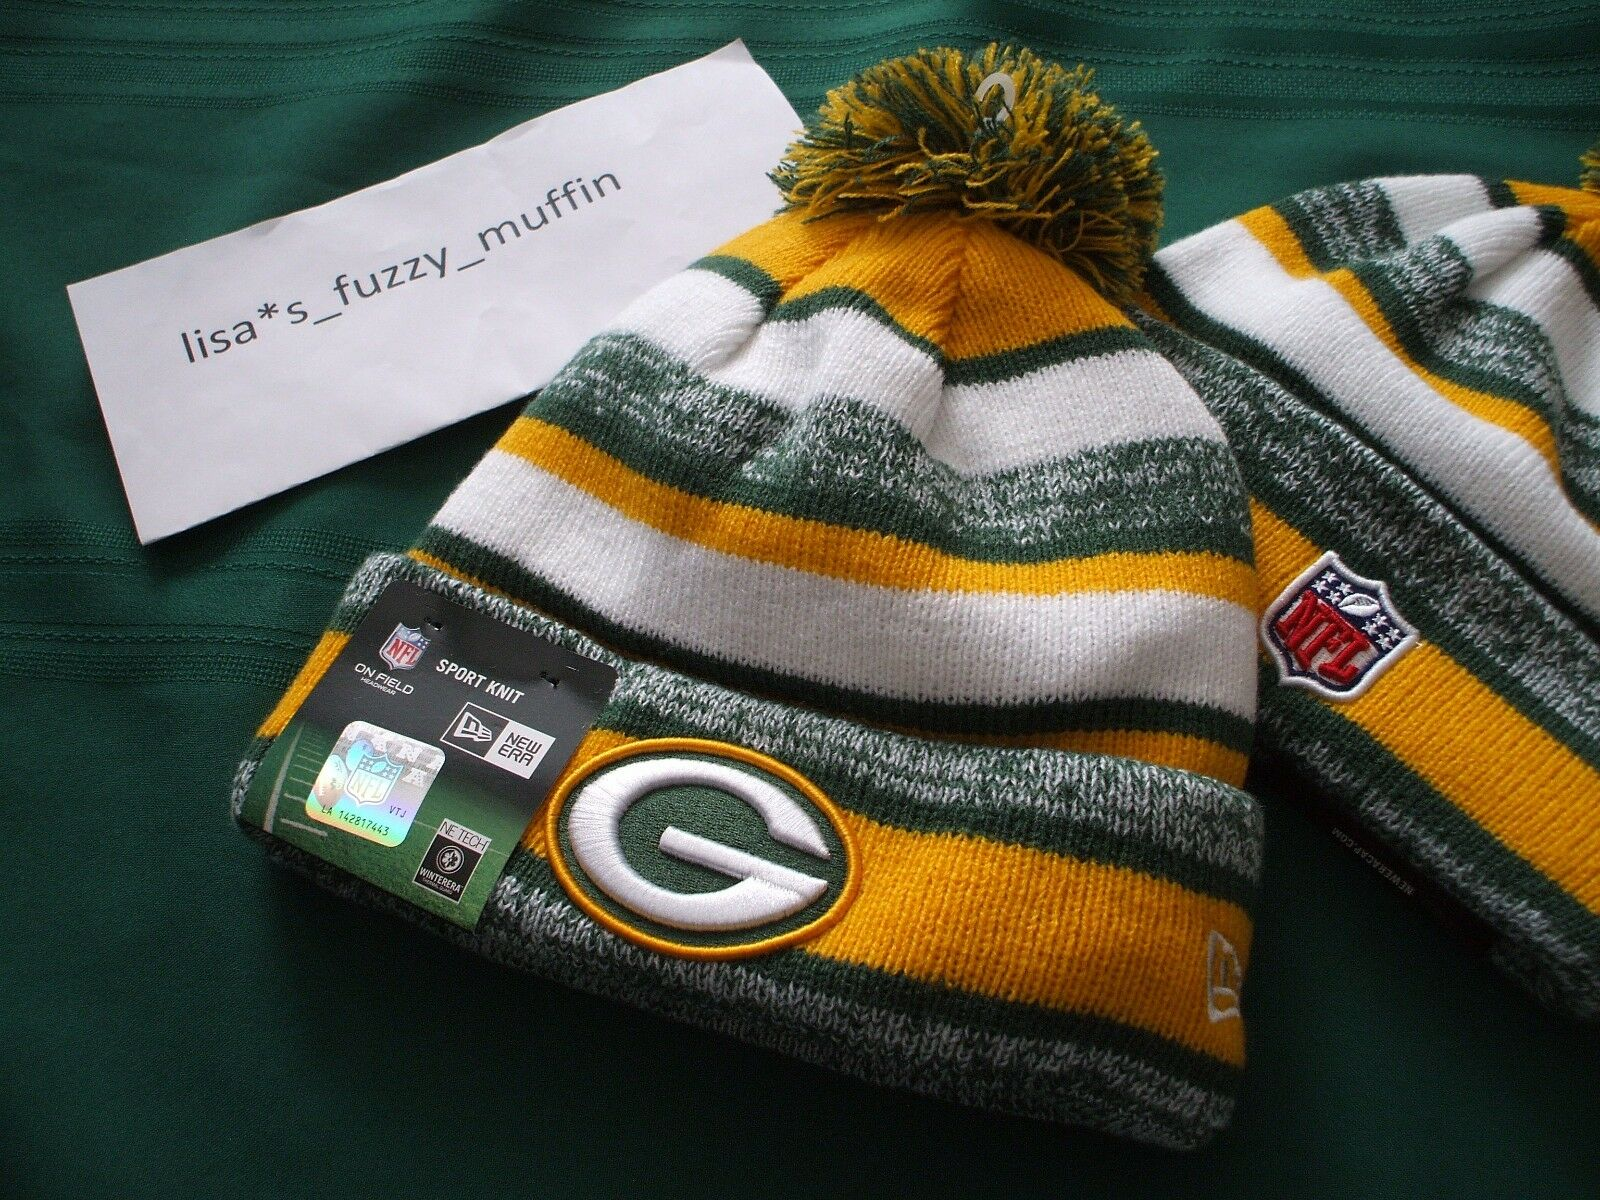 bfa7c664 Green Bay Packers New Era knit pom hat beanie 2014-15 NFL OnField 100%  AUTHENTIC